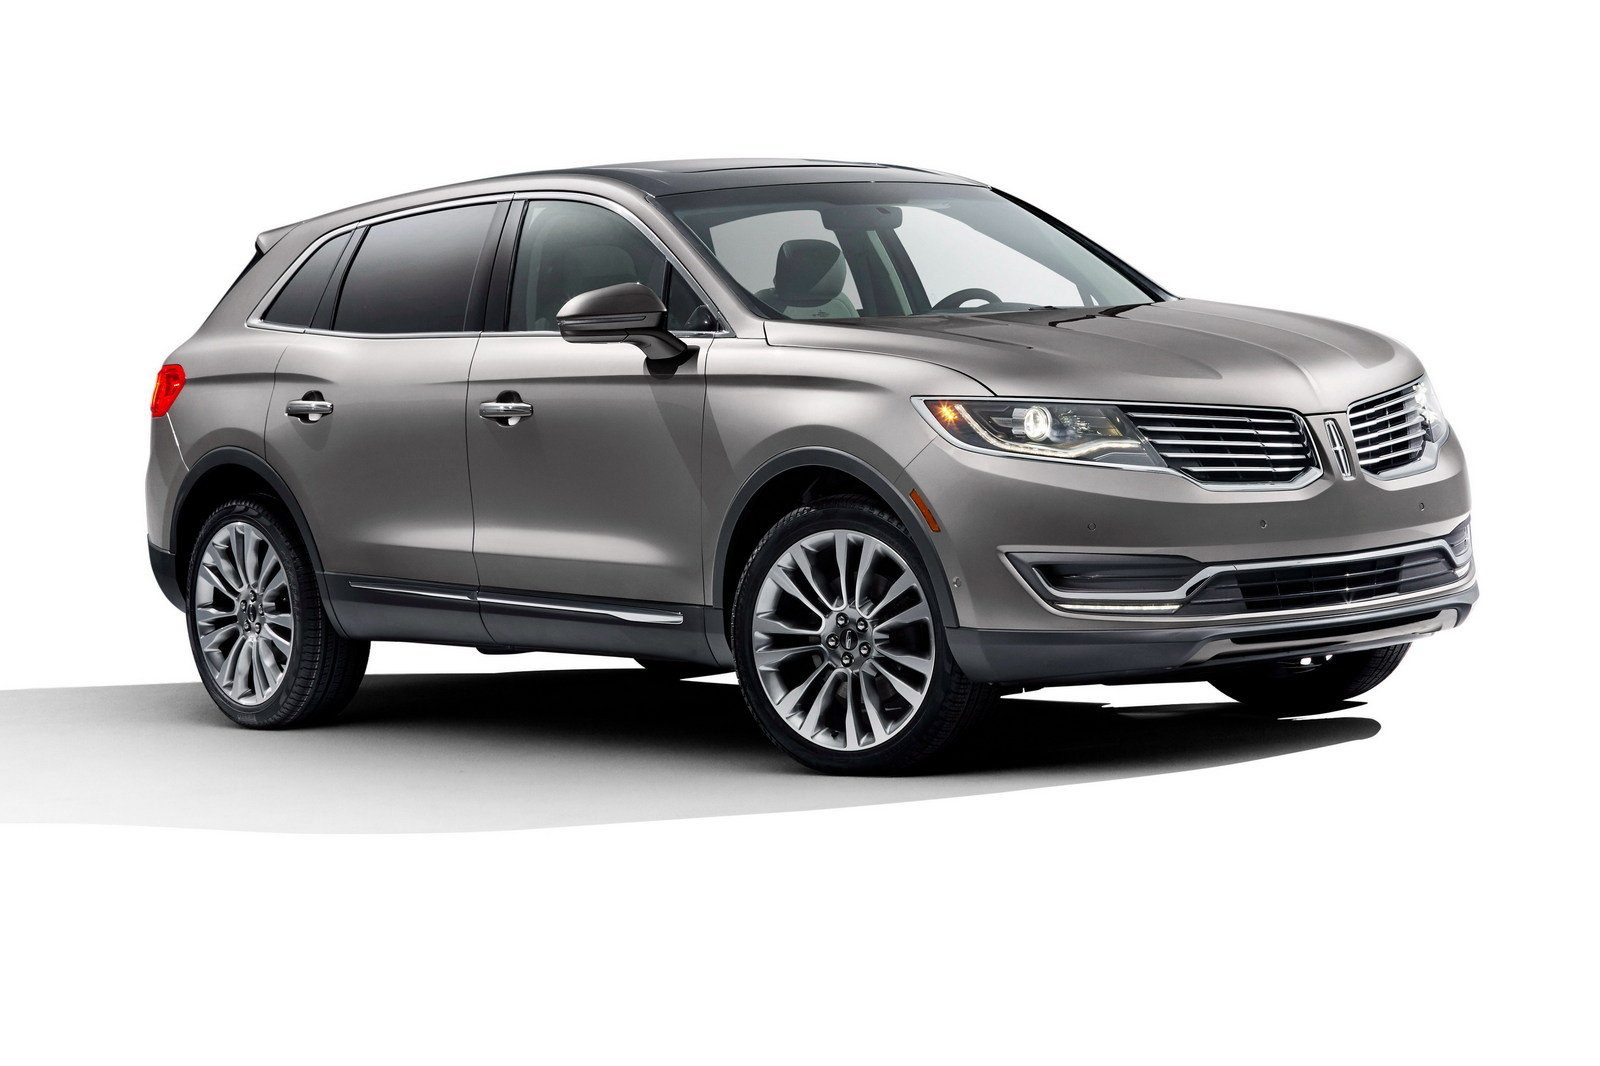 2016 lincoln mkx picture 610816 car review top speed. Black Bedroom Furniture Sets. Home Design Ideas